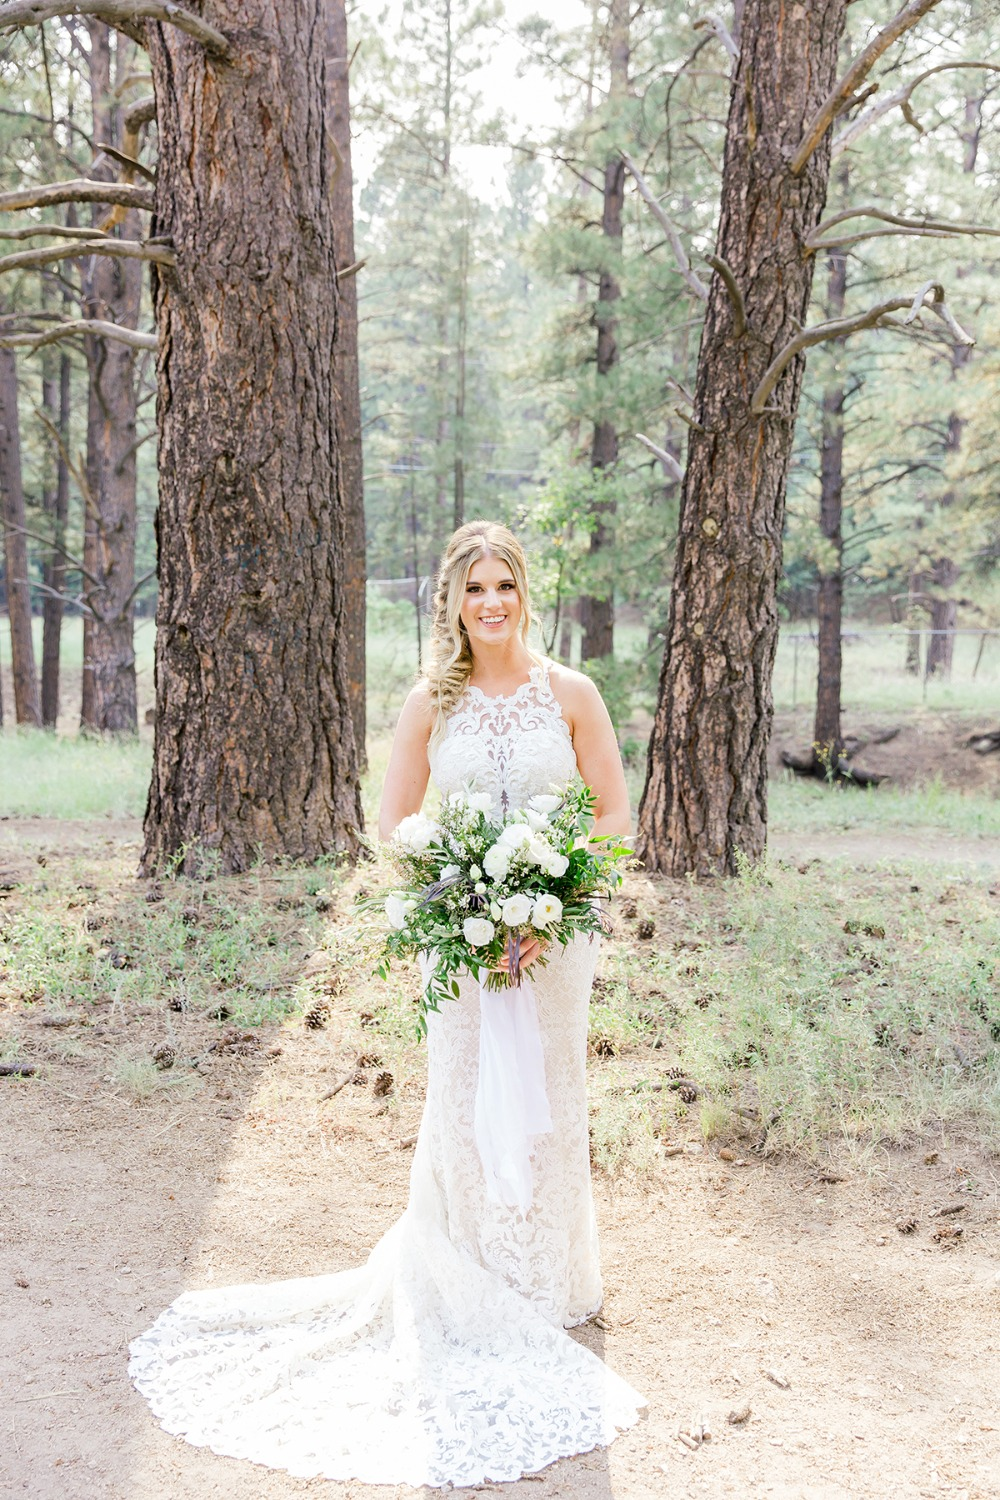 Chic boho bridal look